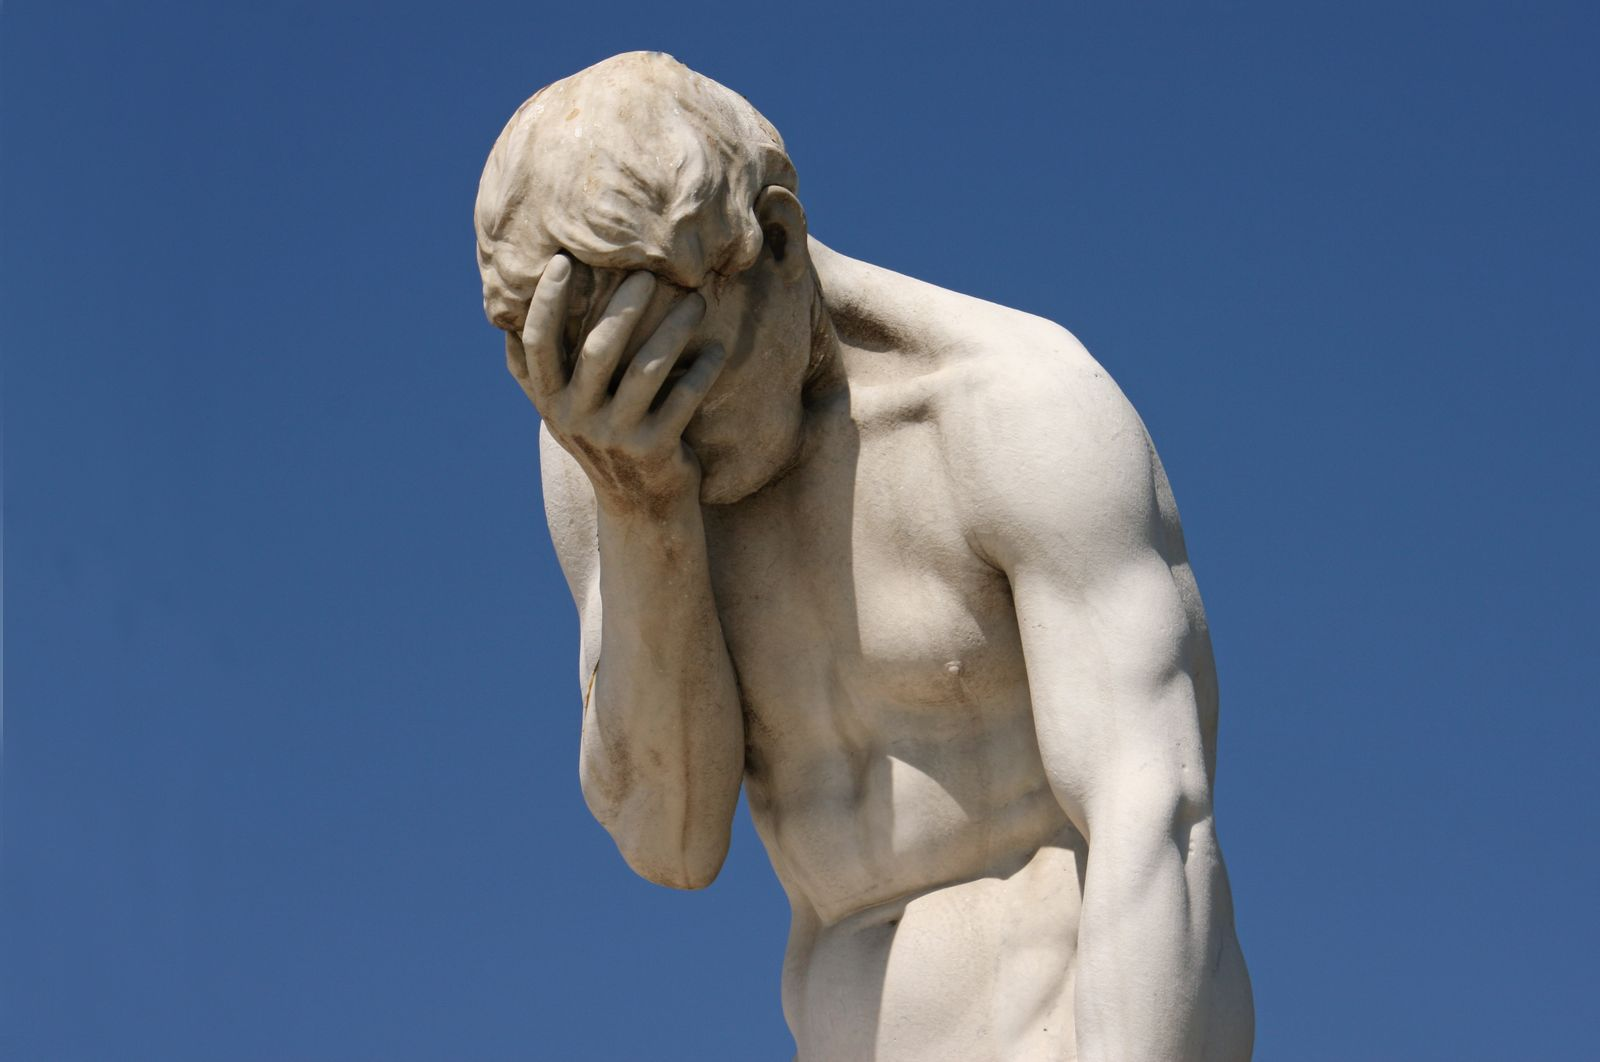 Facepalm: statue with head in hands